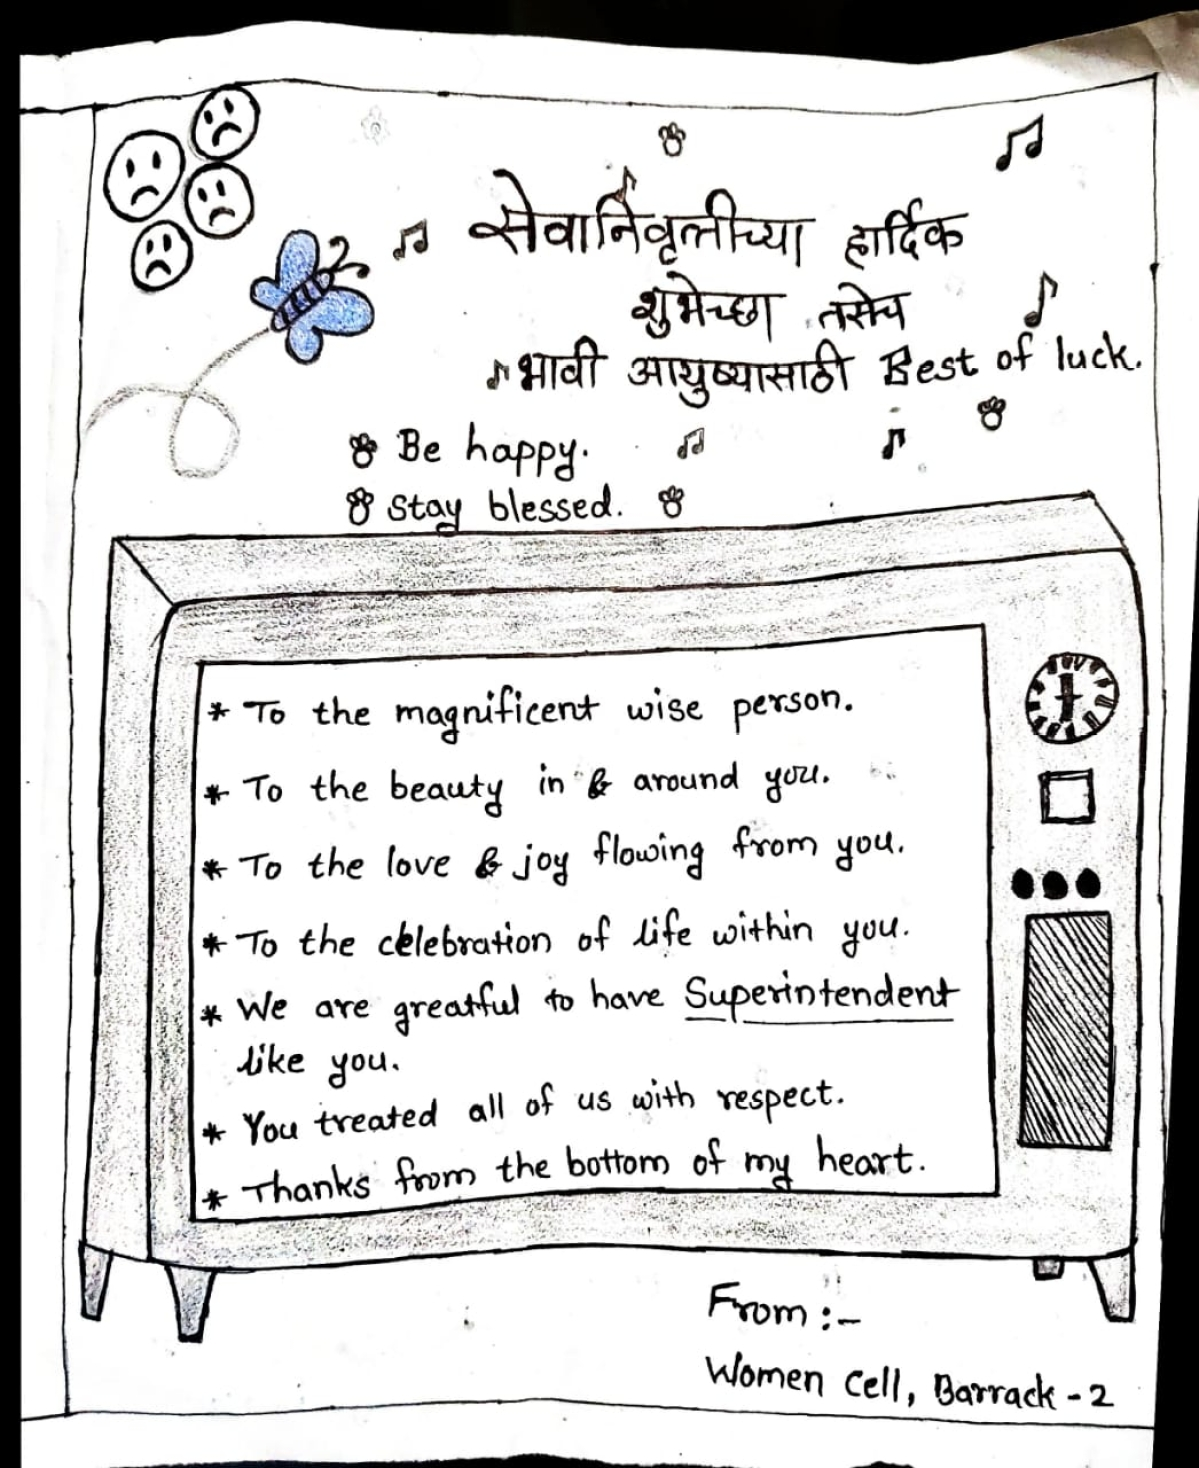 Letters written by inmates from the Byculla women's prison.